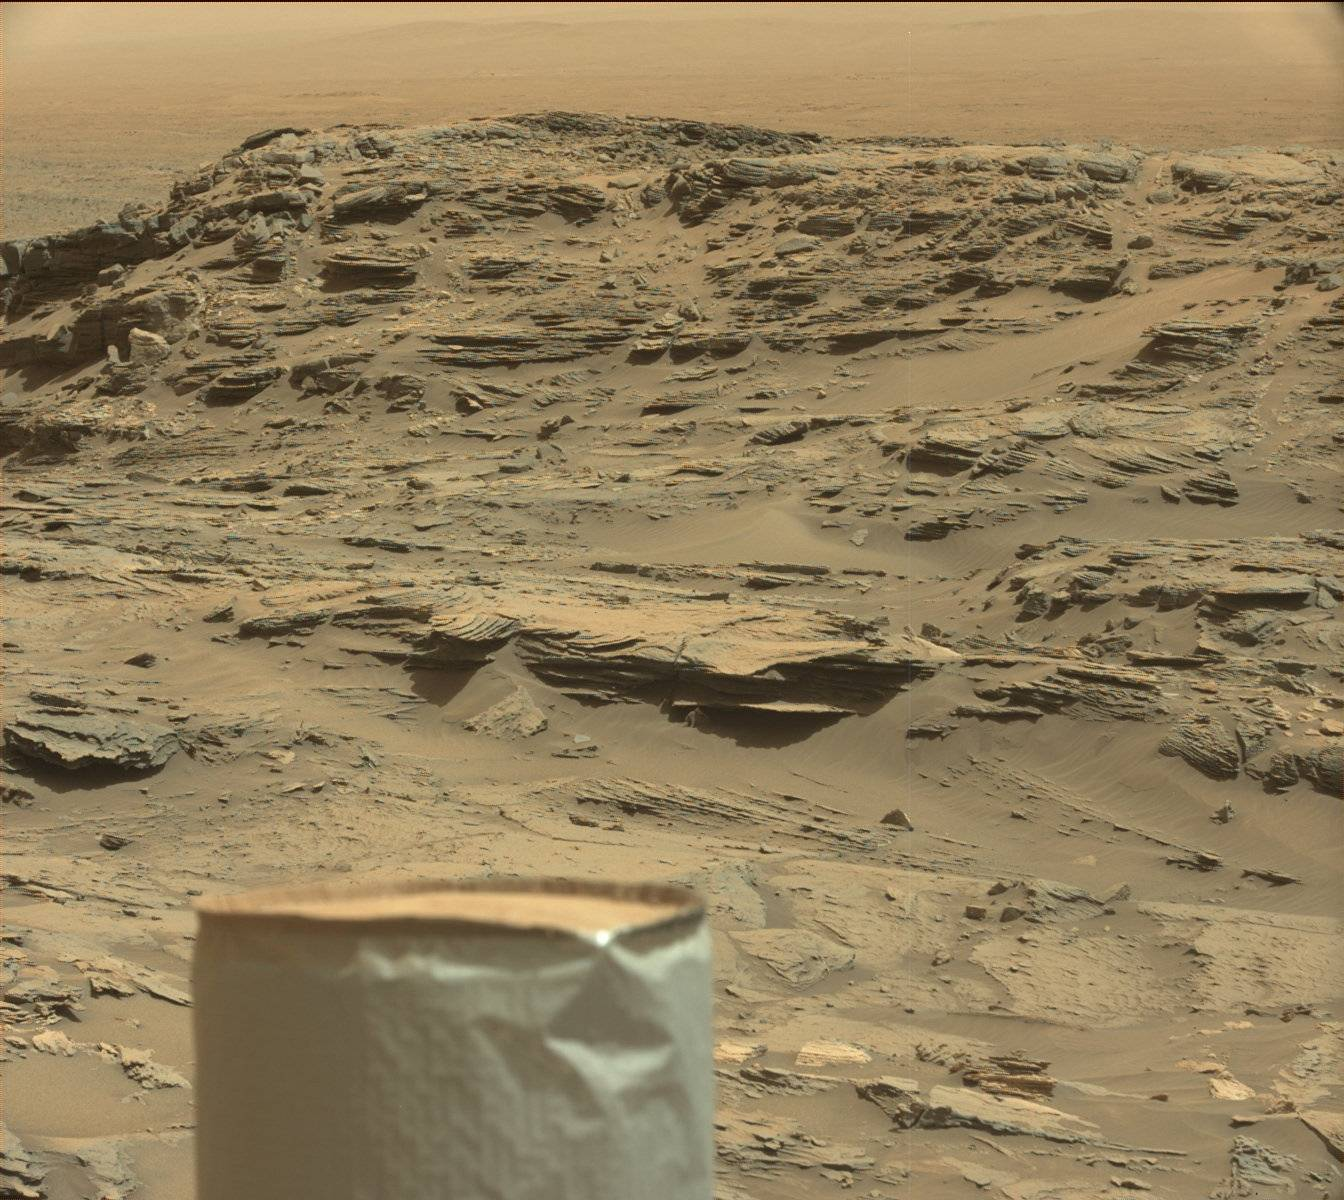 Mars, with Curiosity's UHF antenna.